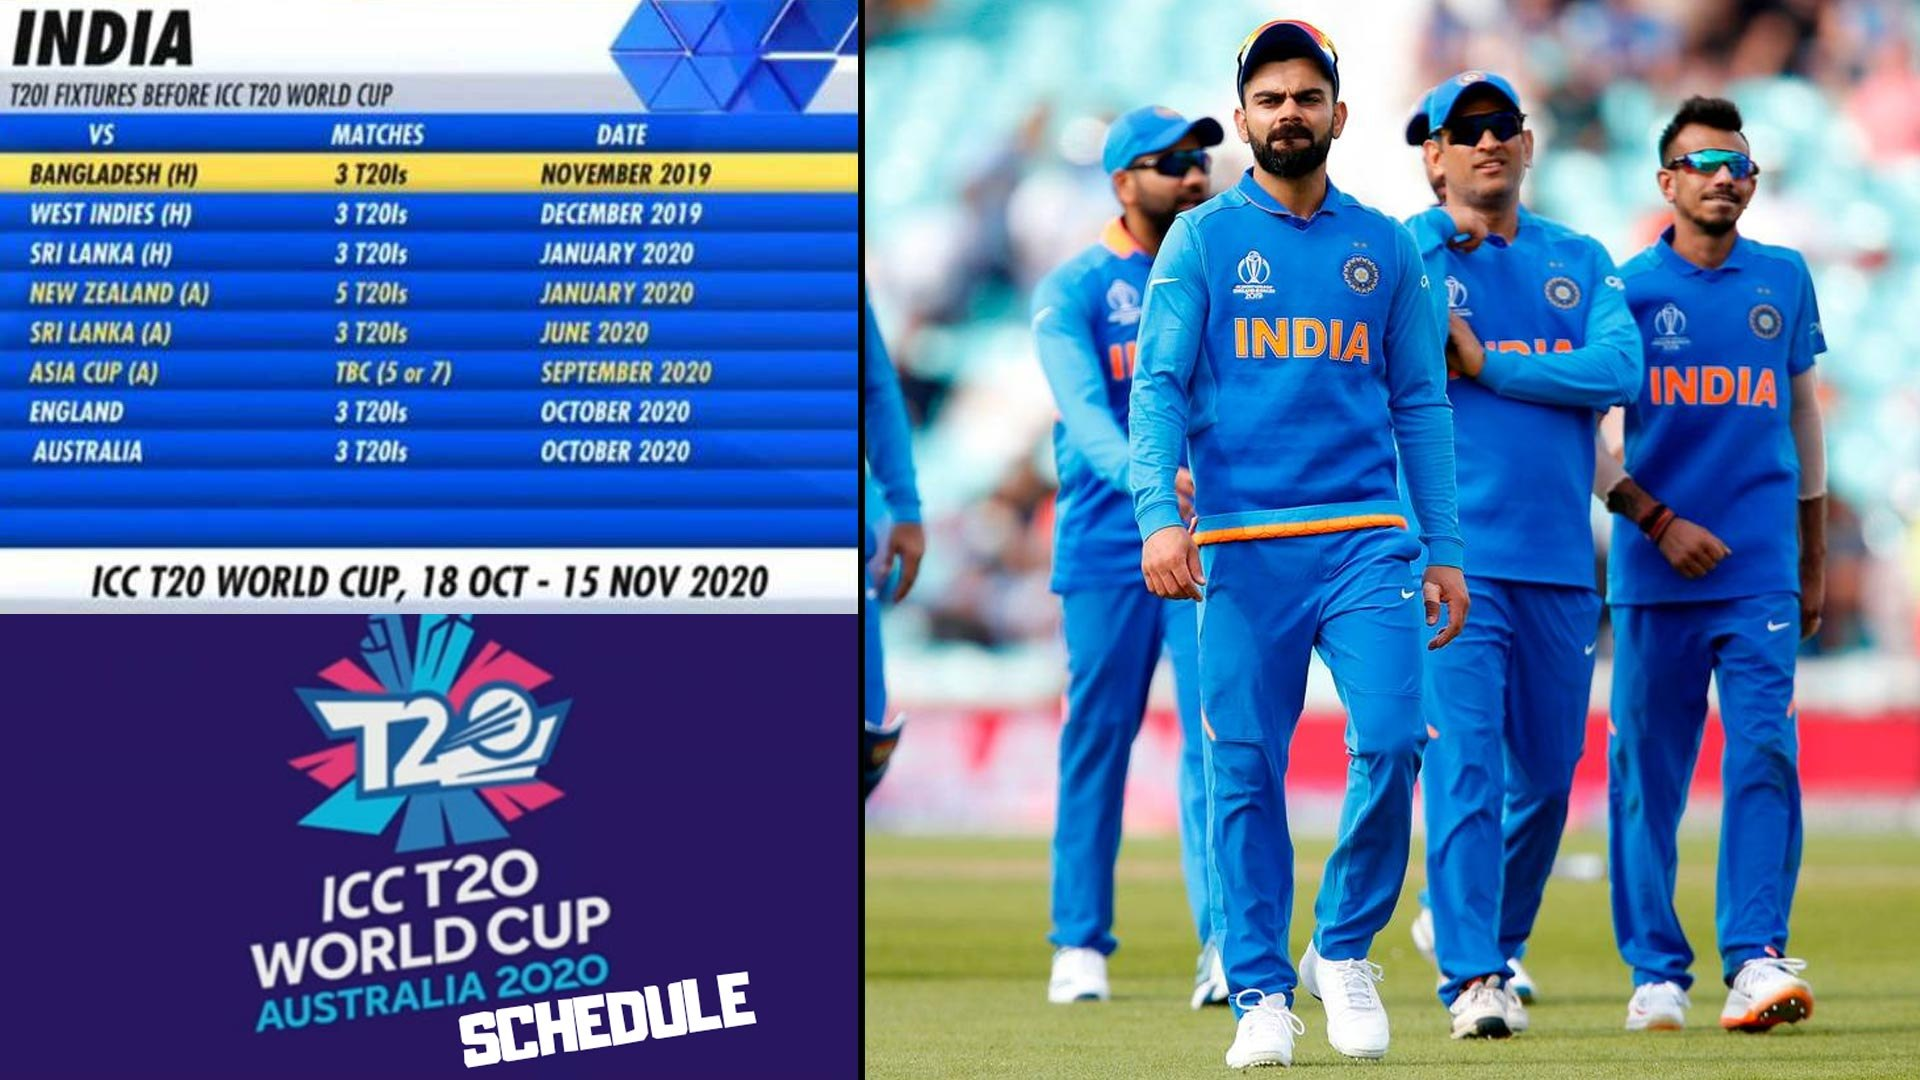 Icc T20 World Cup 2020 Team India S Complete T20 Schedule Before T20 World Cup 2020 Oneindia Video Dailymotion